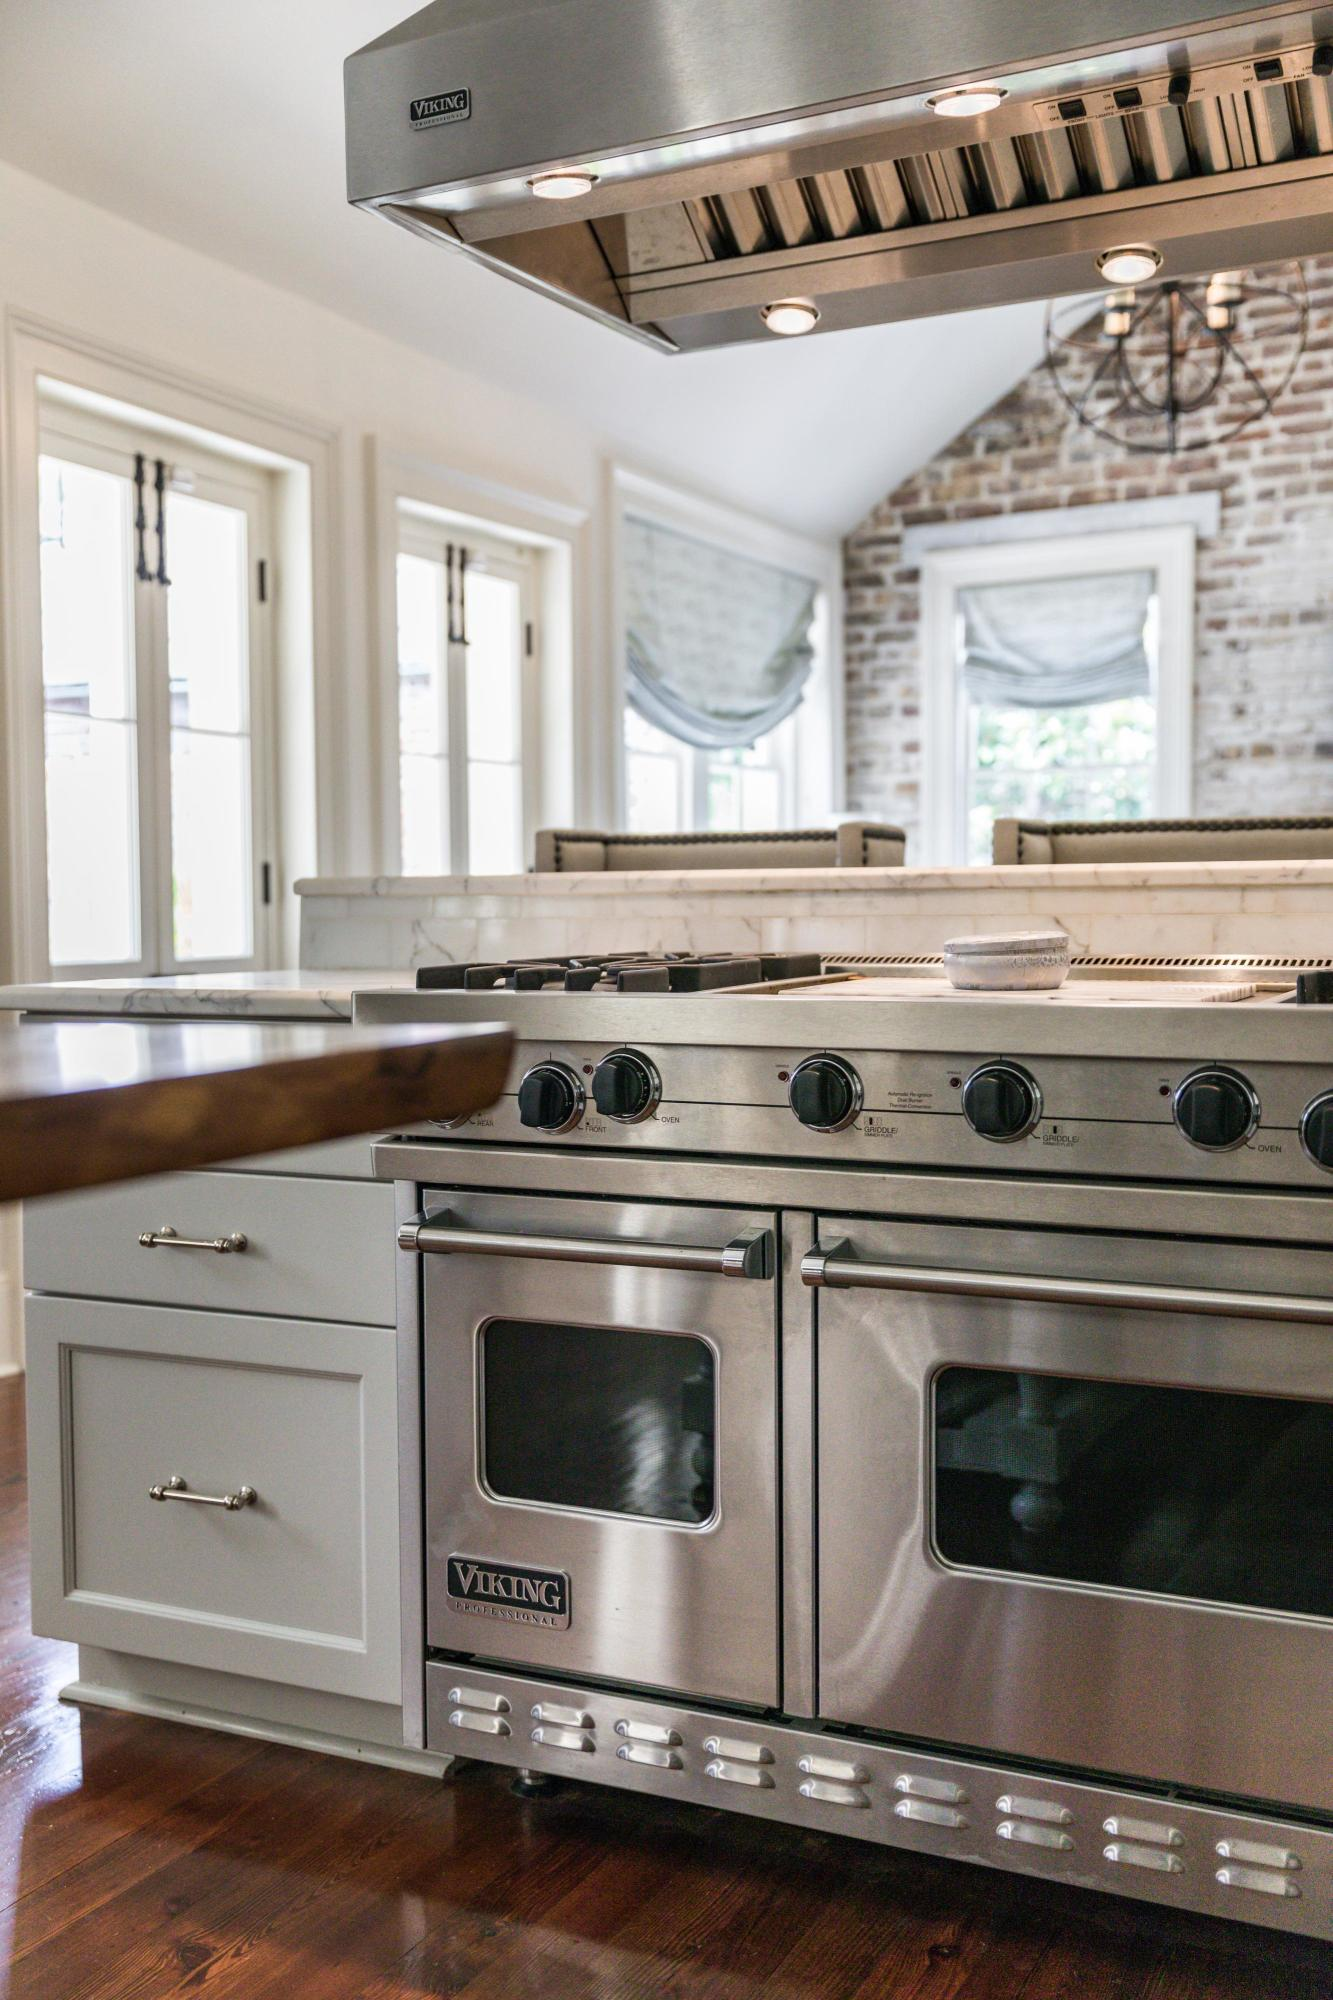 South of Broad Homes For Sale - 11 Church, Charleston, SC - 30